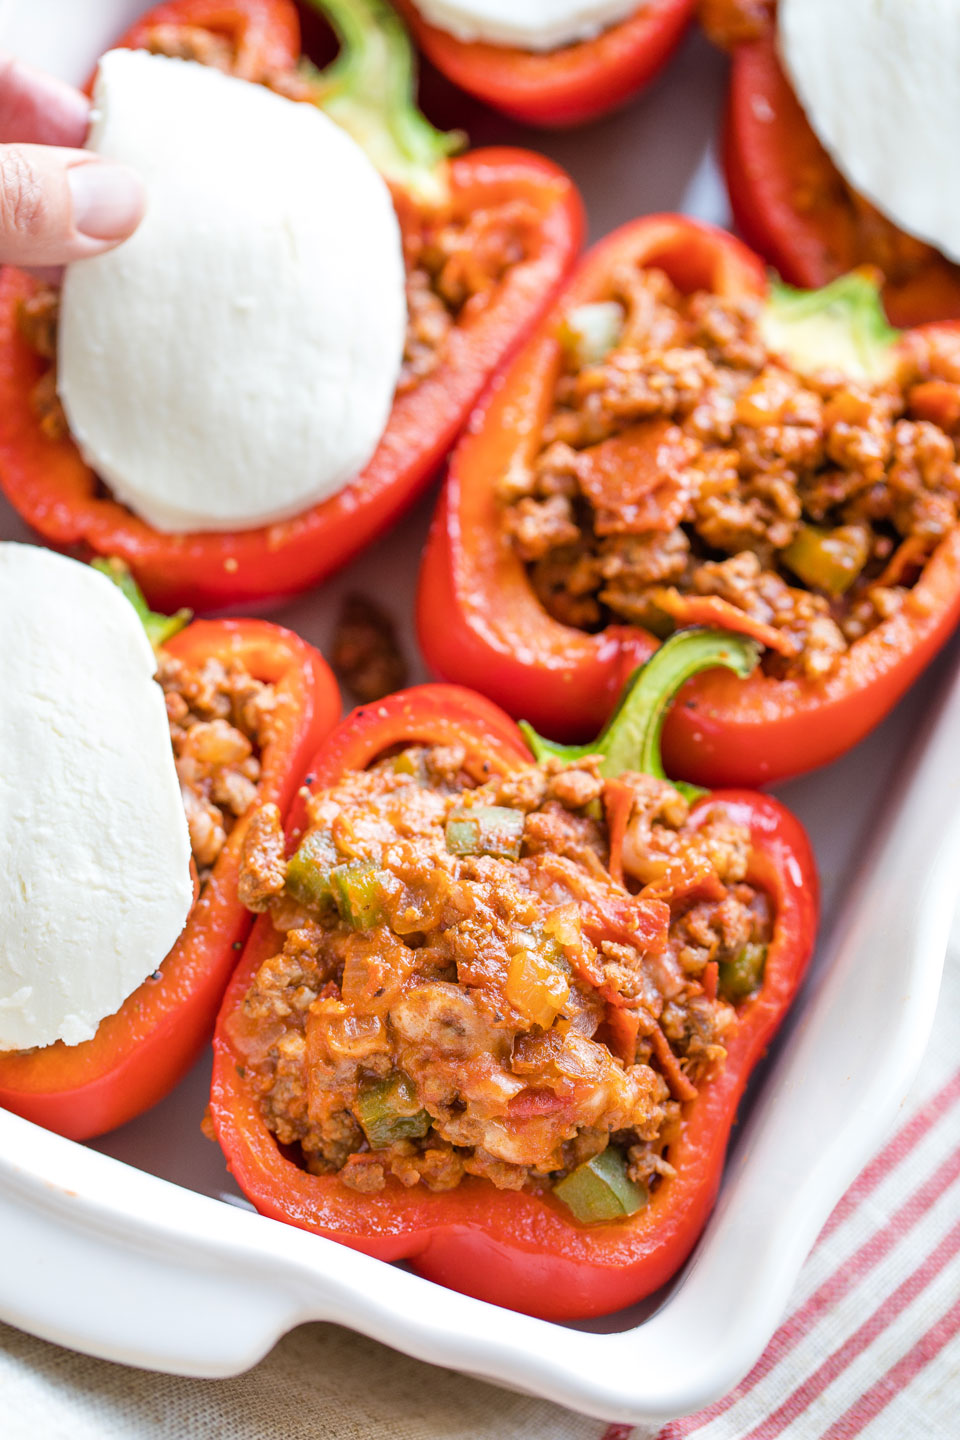 Peppers stuffed in baking dish with hand laying mozzarella on top.